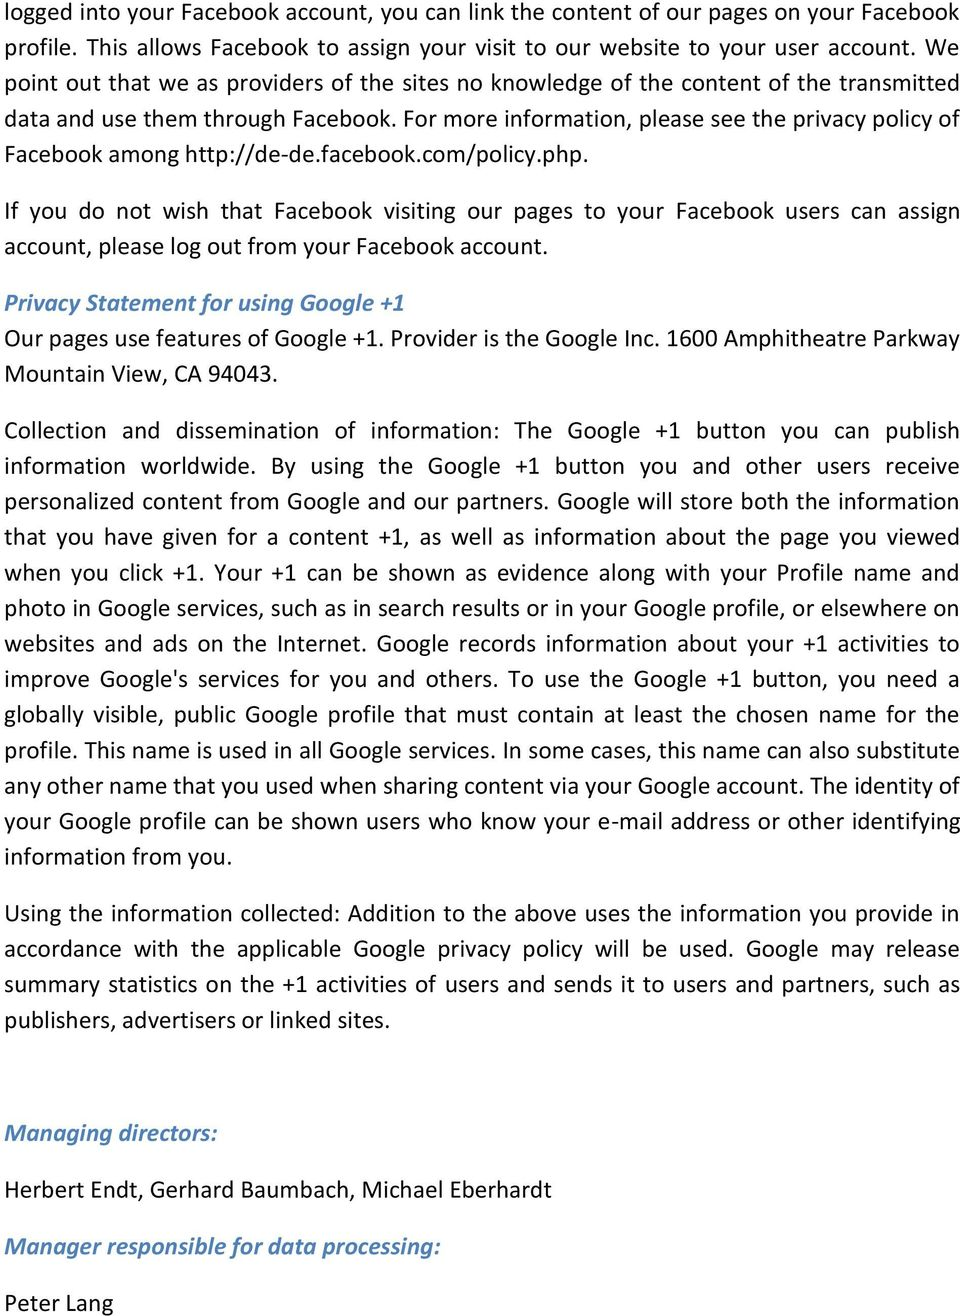 For more information, please see the privacy policy of Facebook among http://de-de.facebook.com/policy.php.